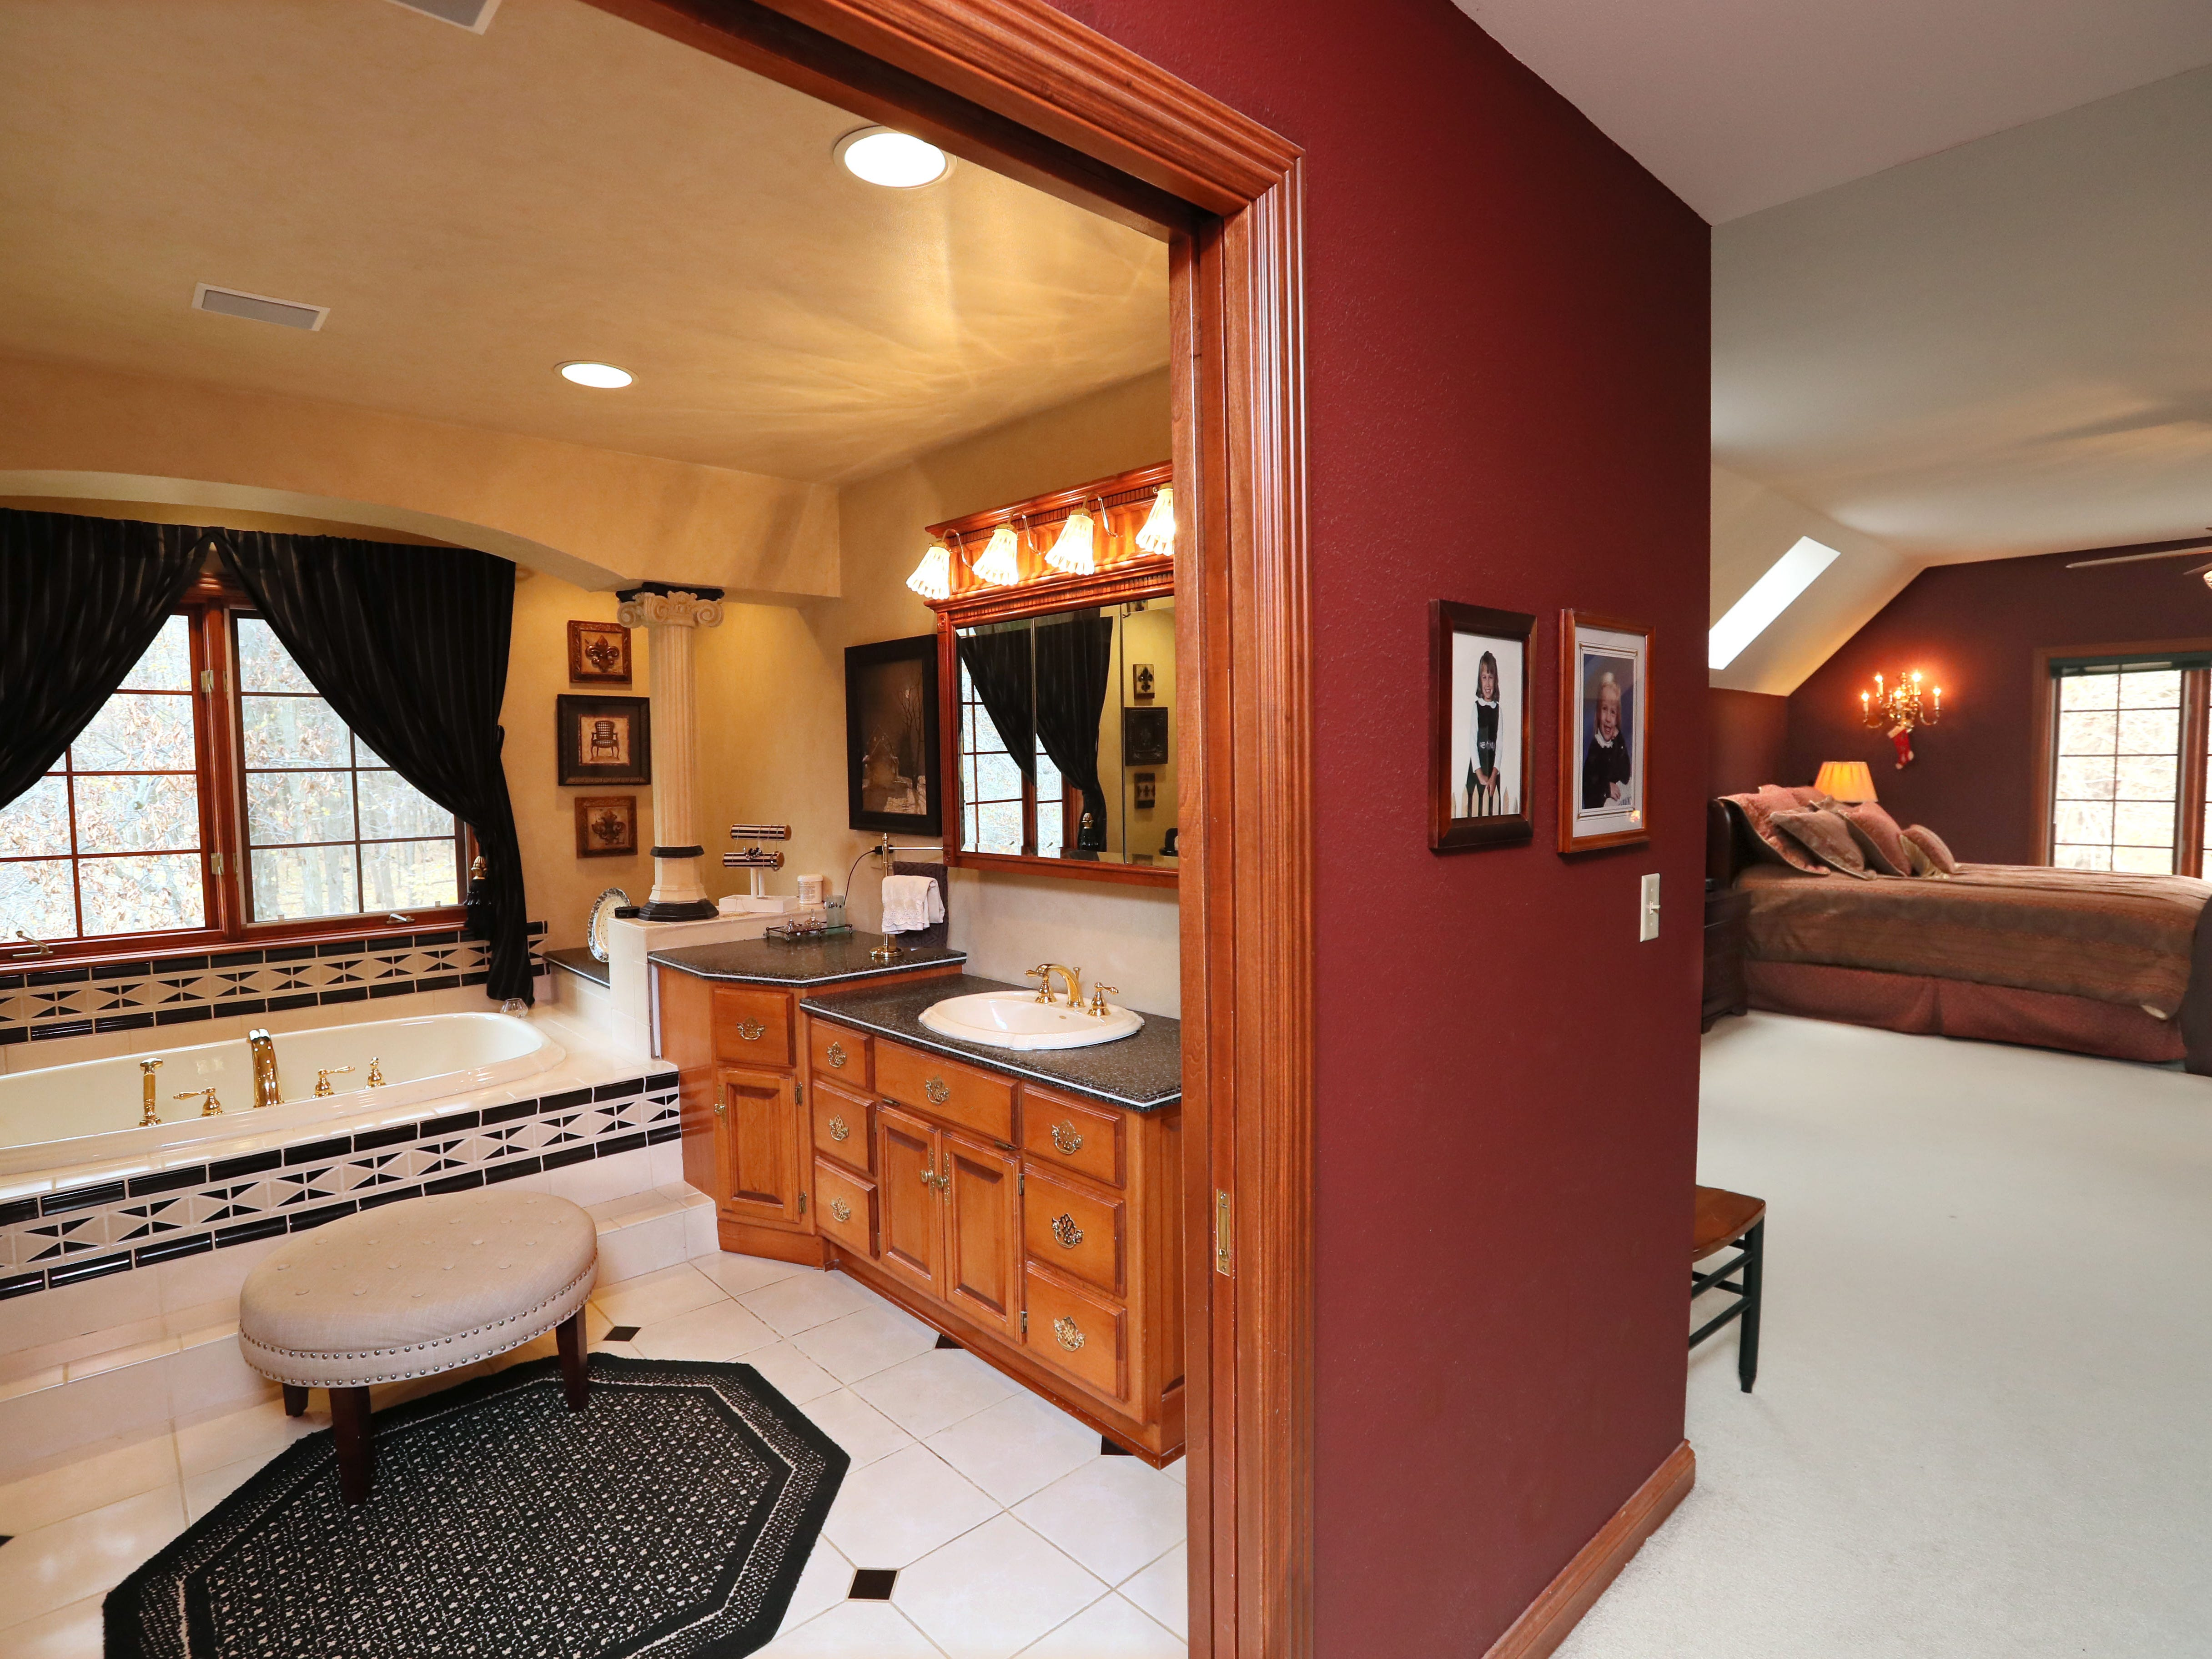 The master suite takes up the entire space above the home's three-car garage.